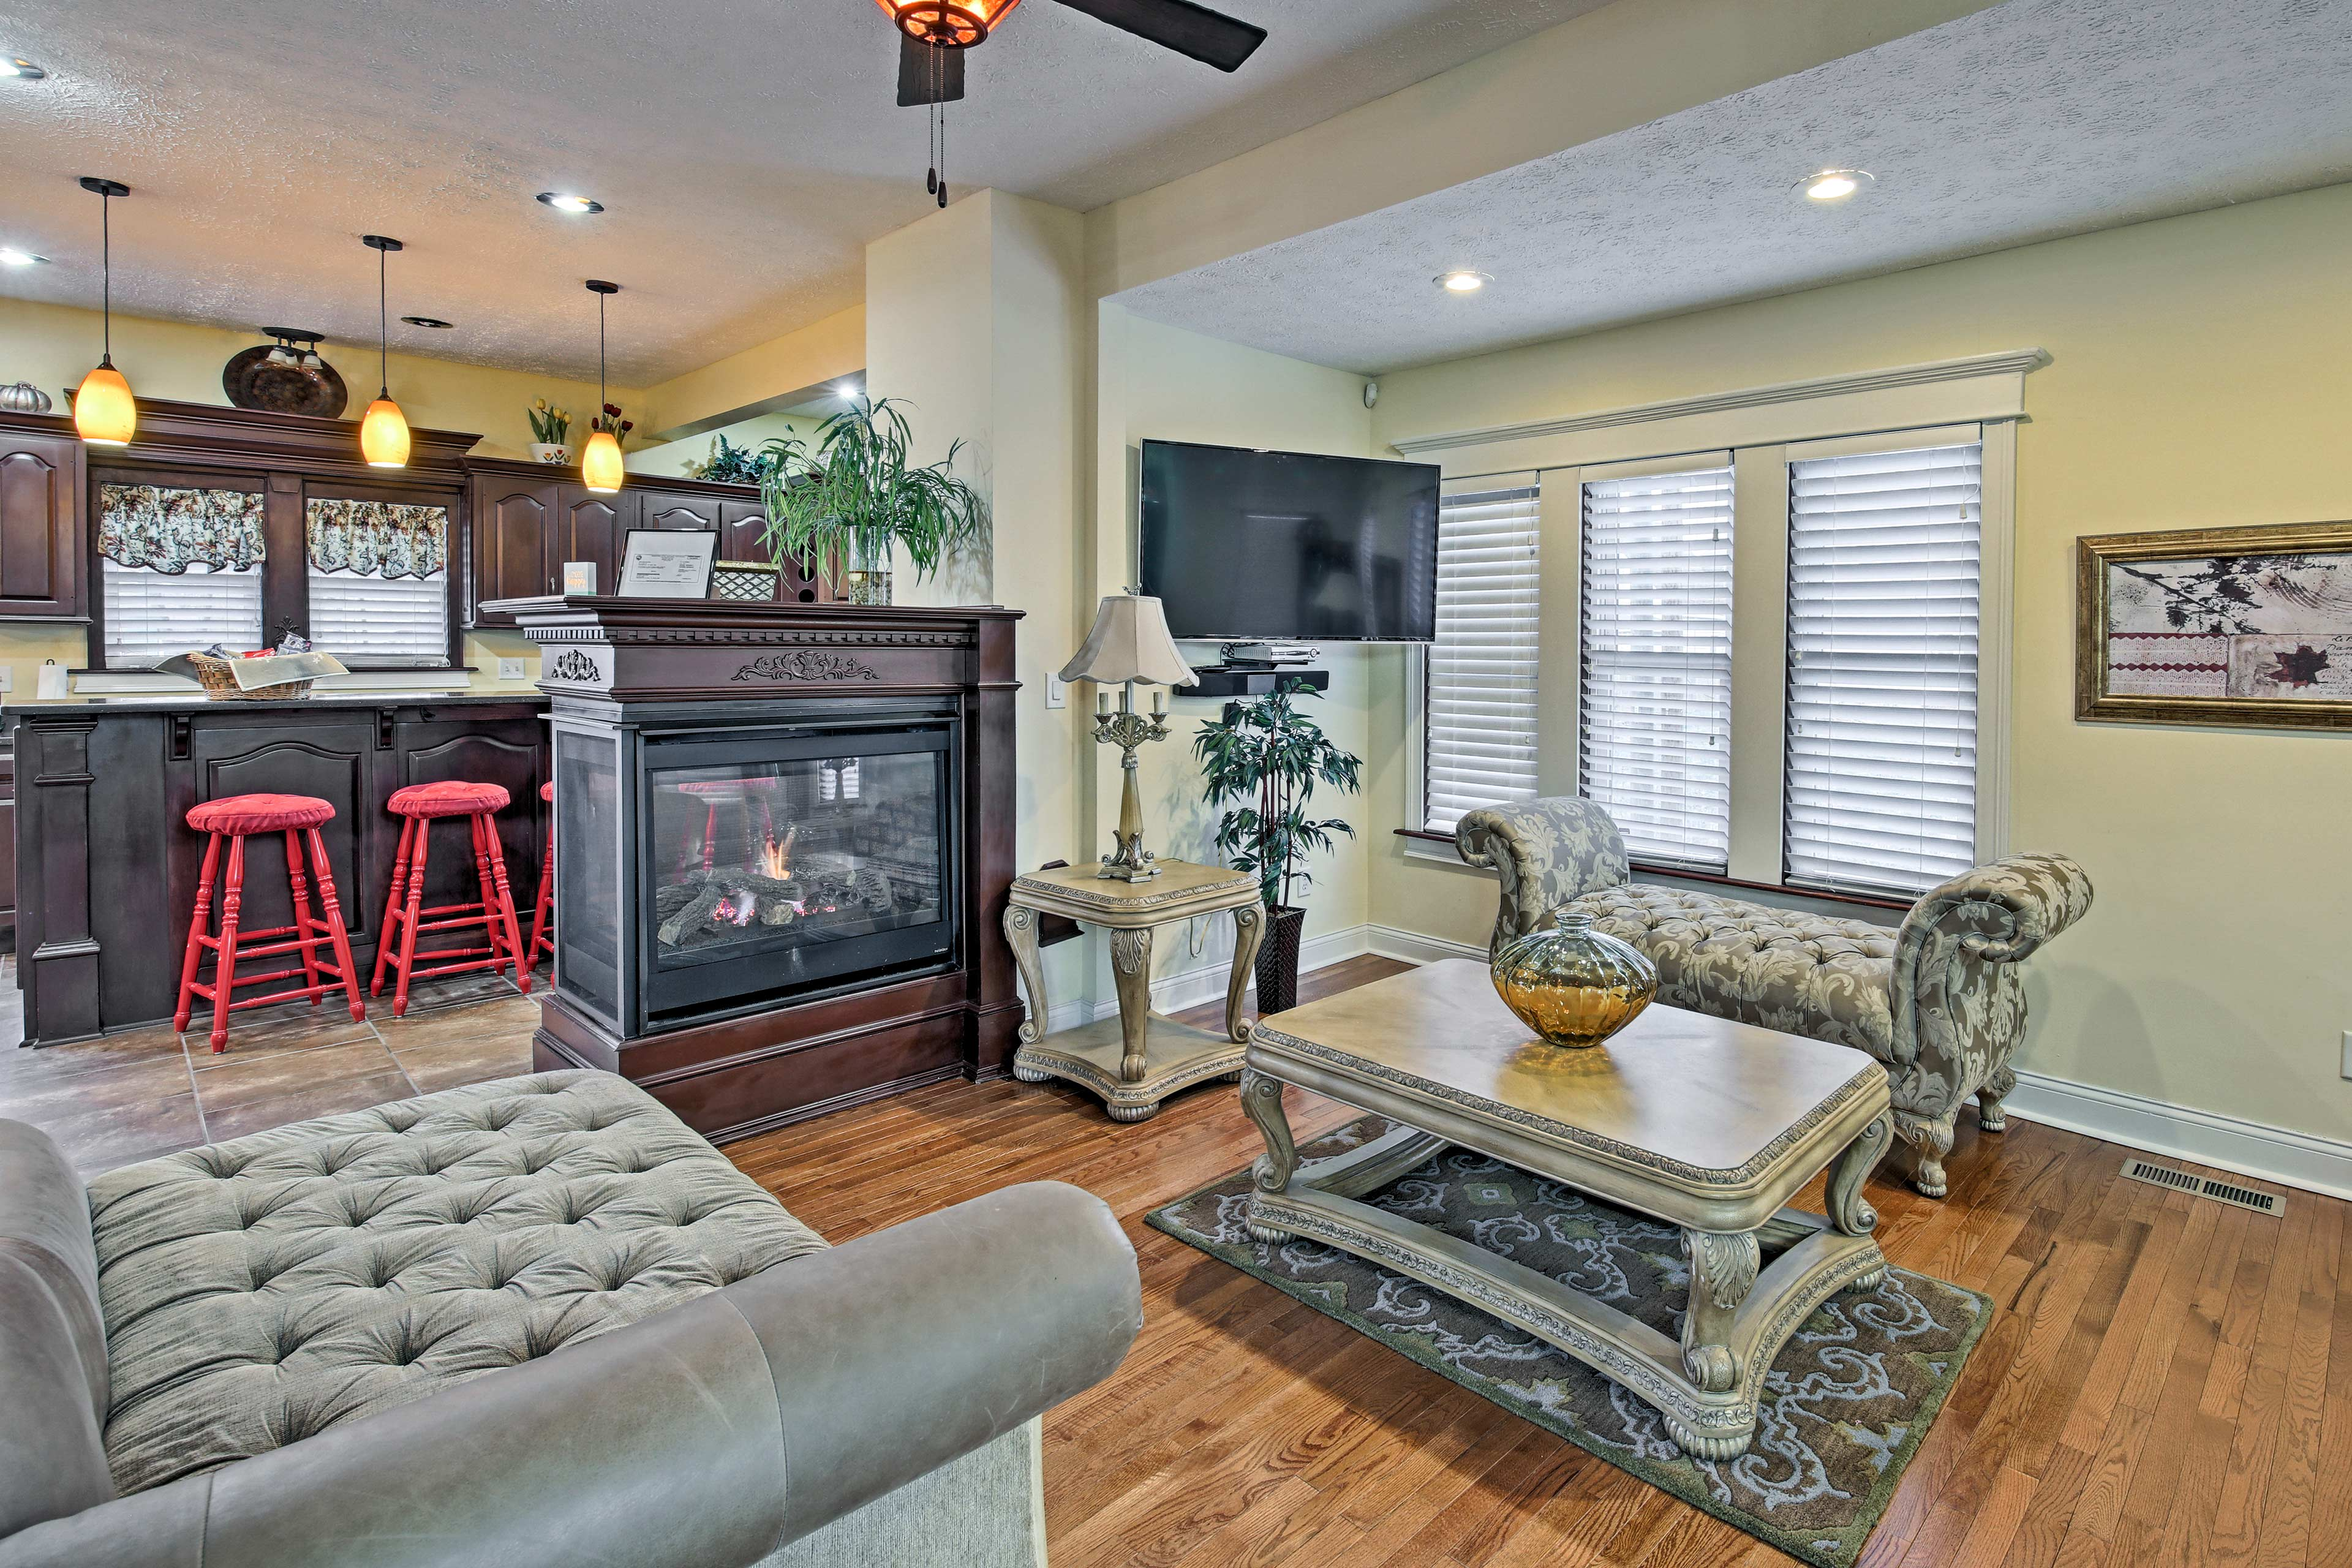 The home comfortably accommodates up to 12 guests.